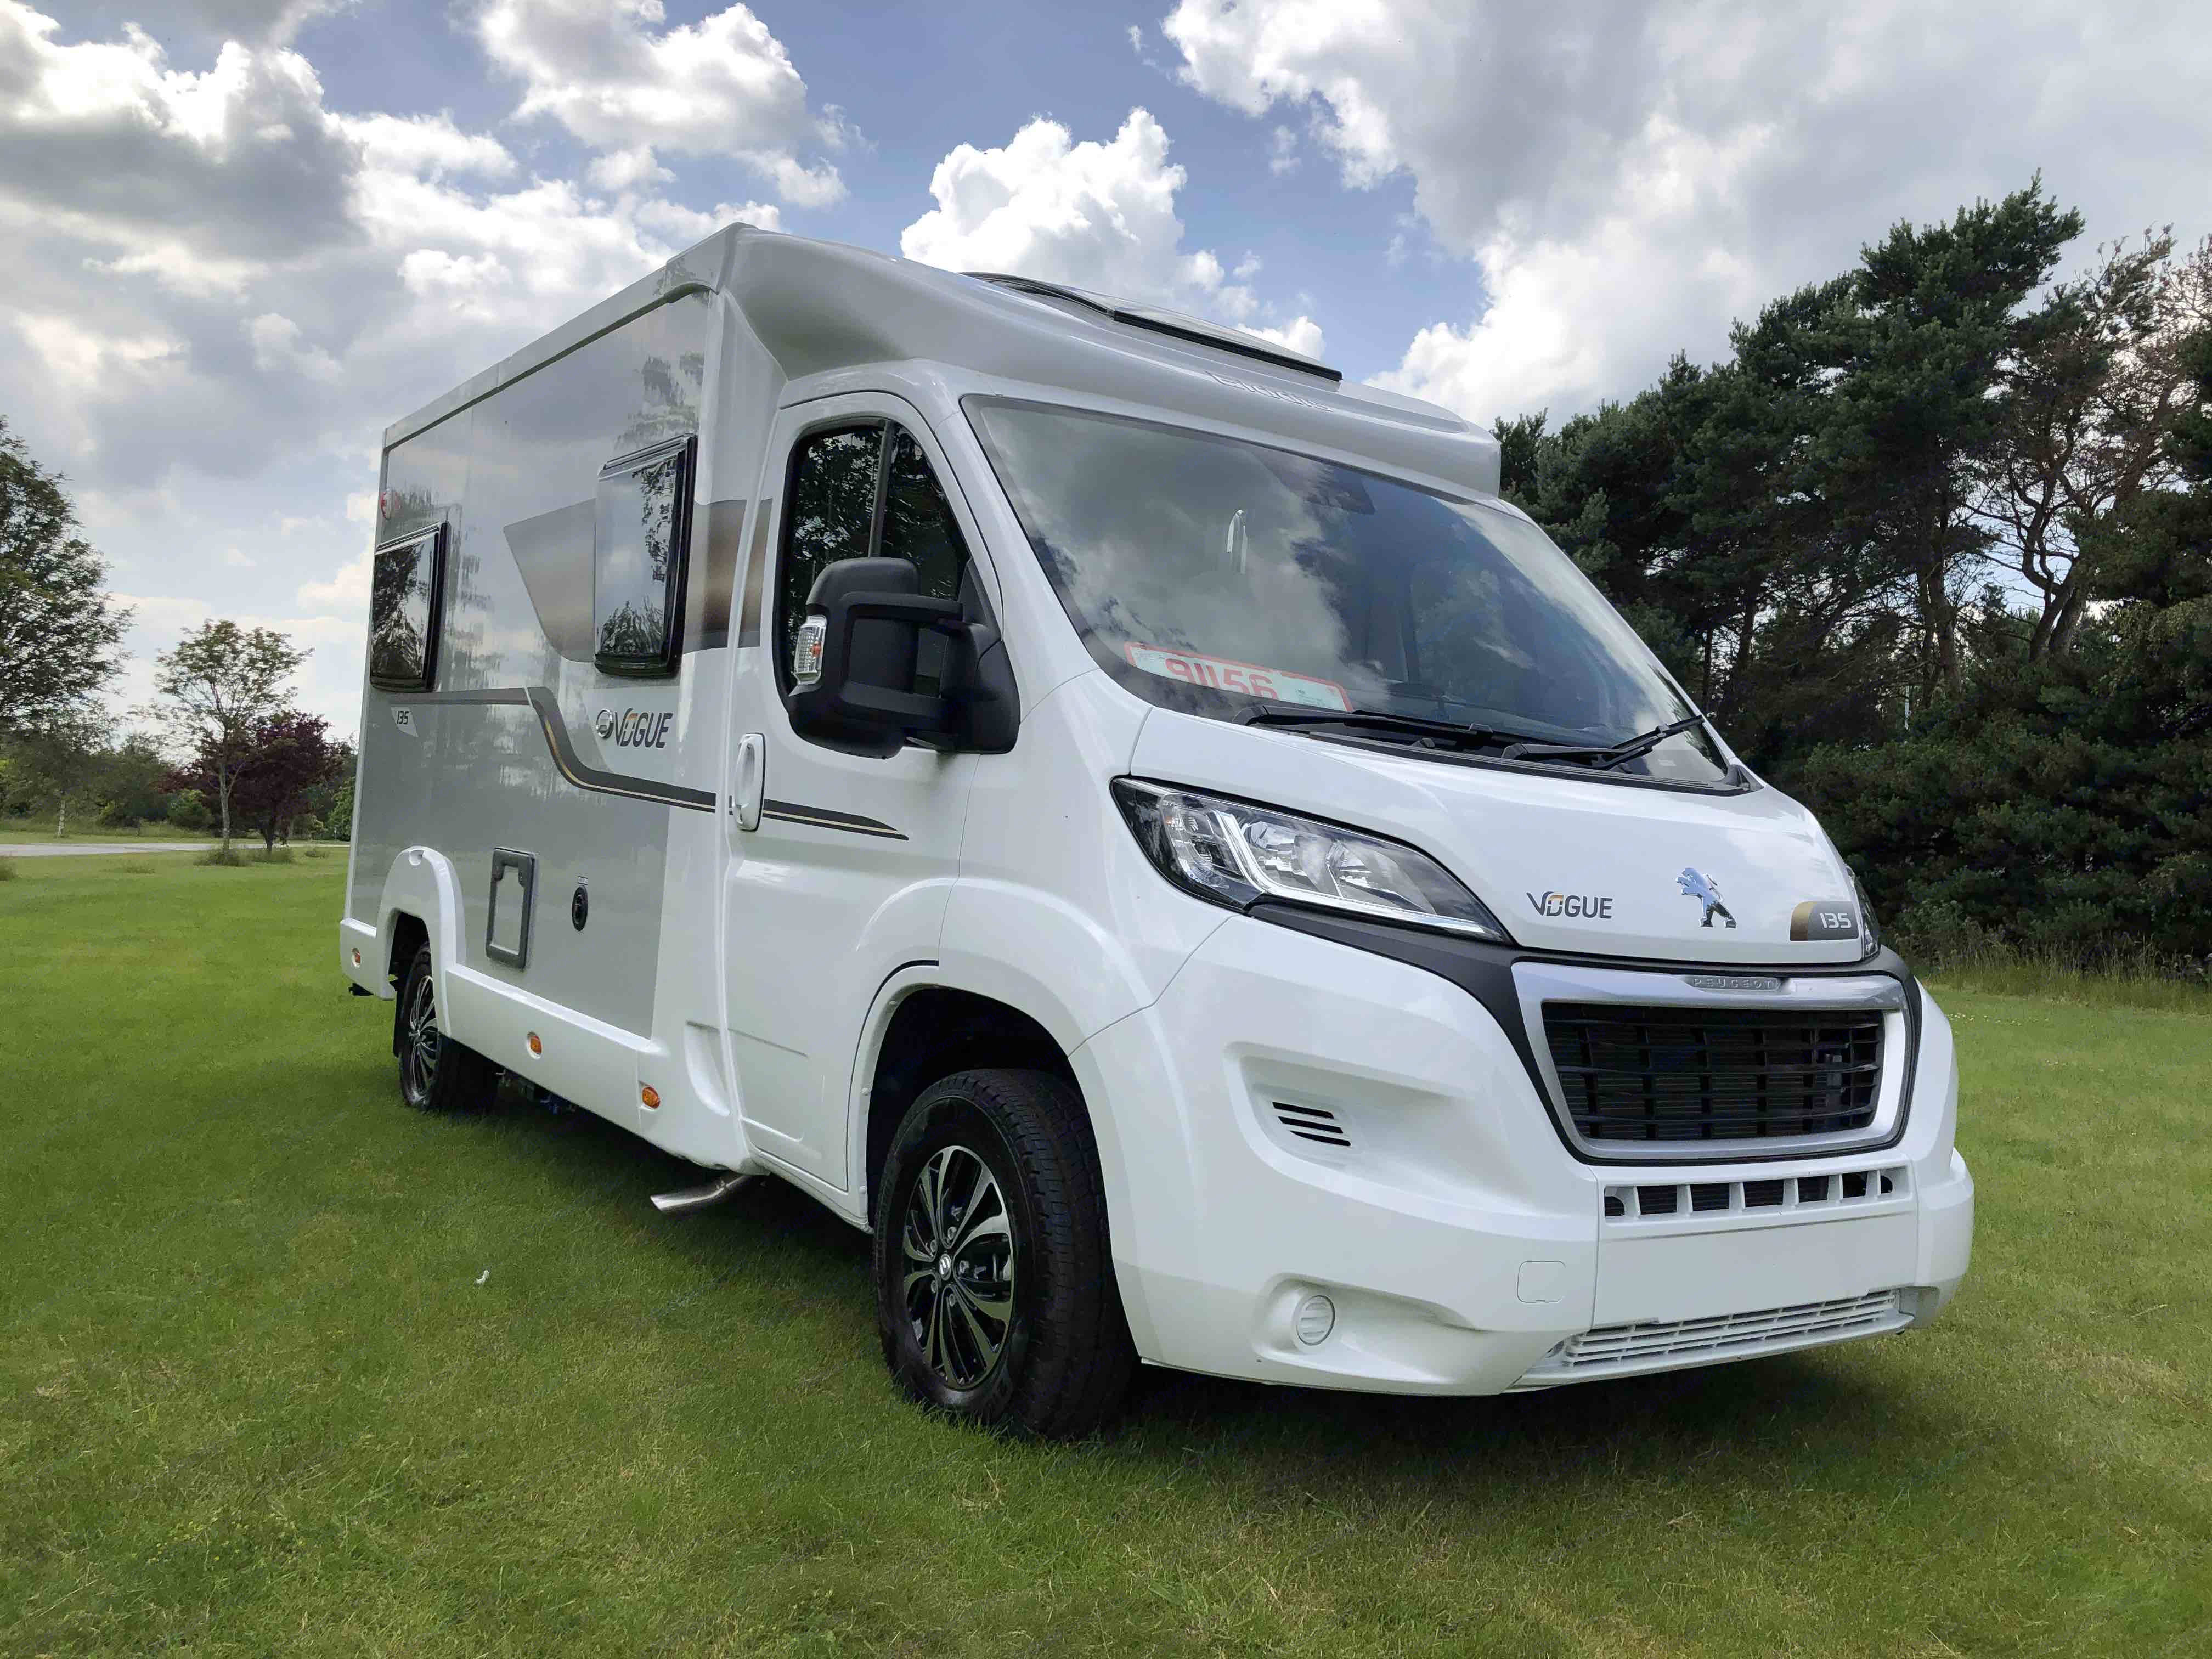 Meet Brian - our Elddis Accordo 135 motorhome. Although only 6 meters in length this motorhome is packed full of all the things you will need for an extended road trip.. Elddis Accordo 135 2019